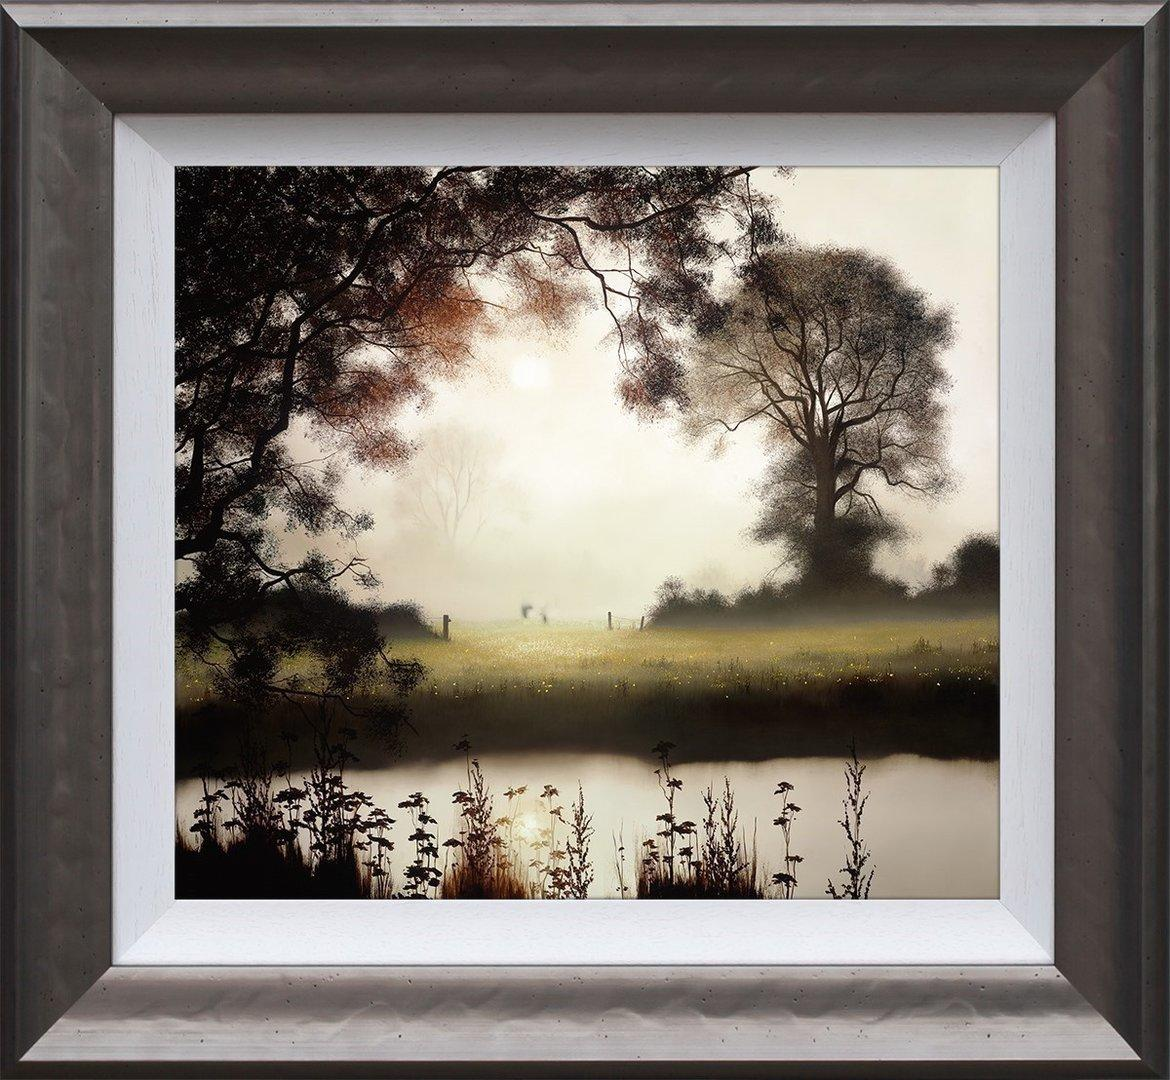 The Best of Times by John Waterhouse - Limited Edition print ZWTR064